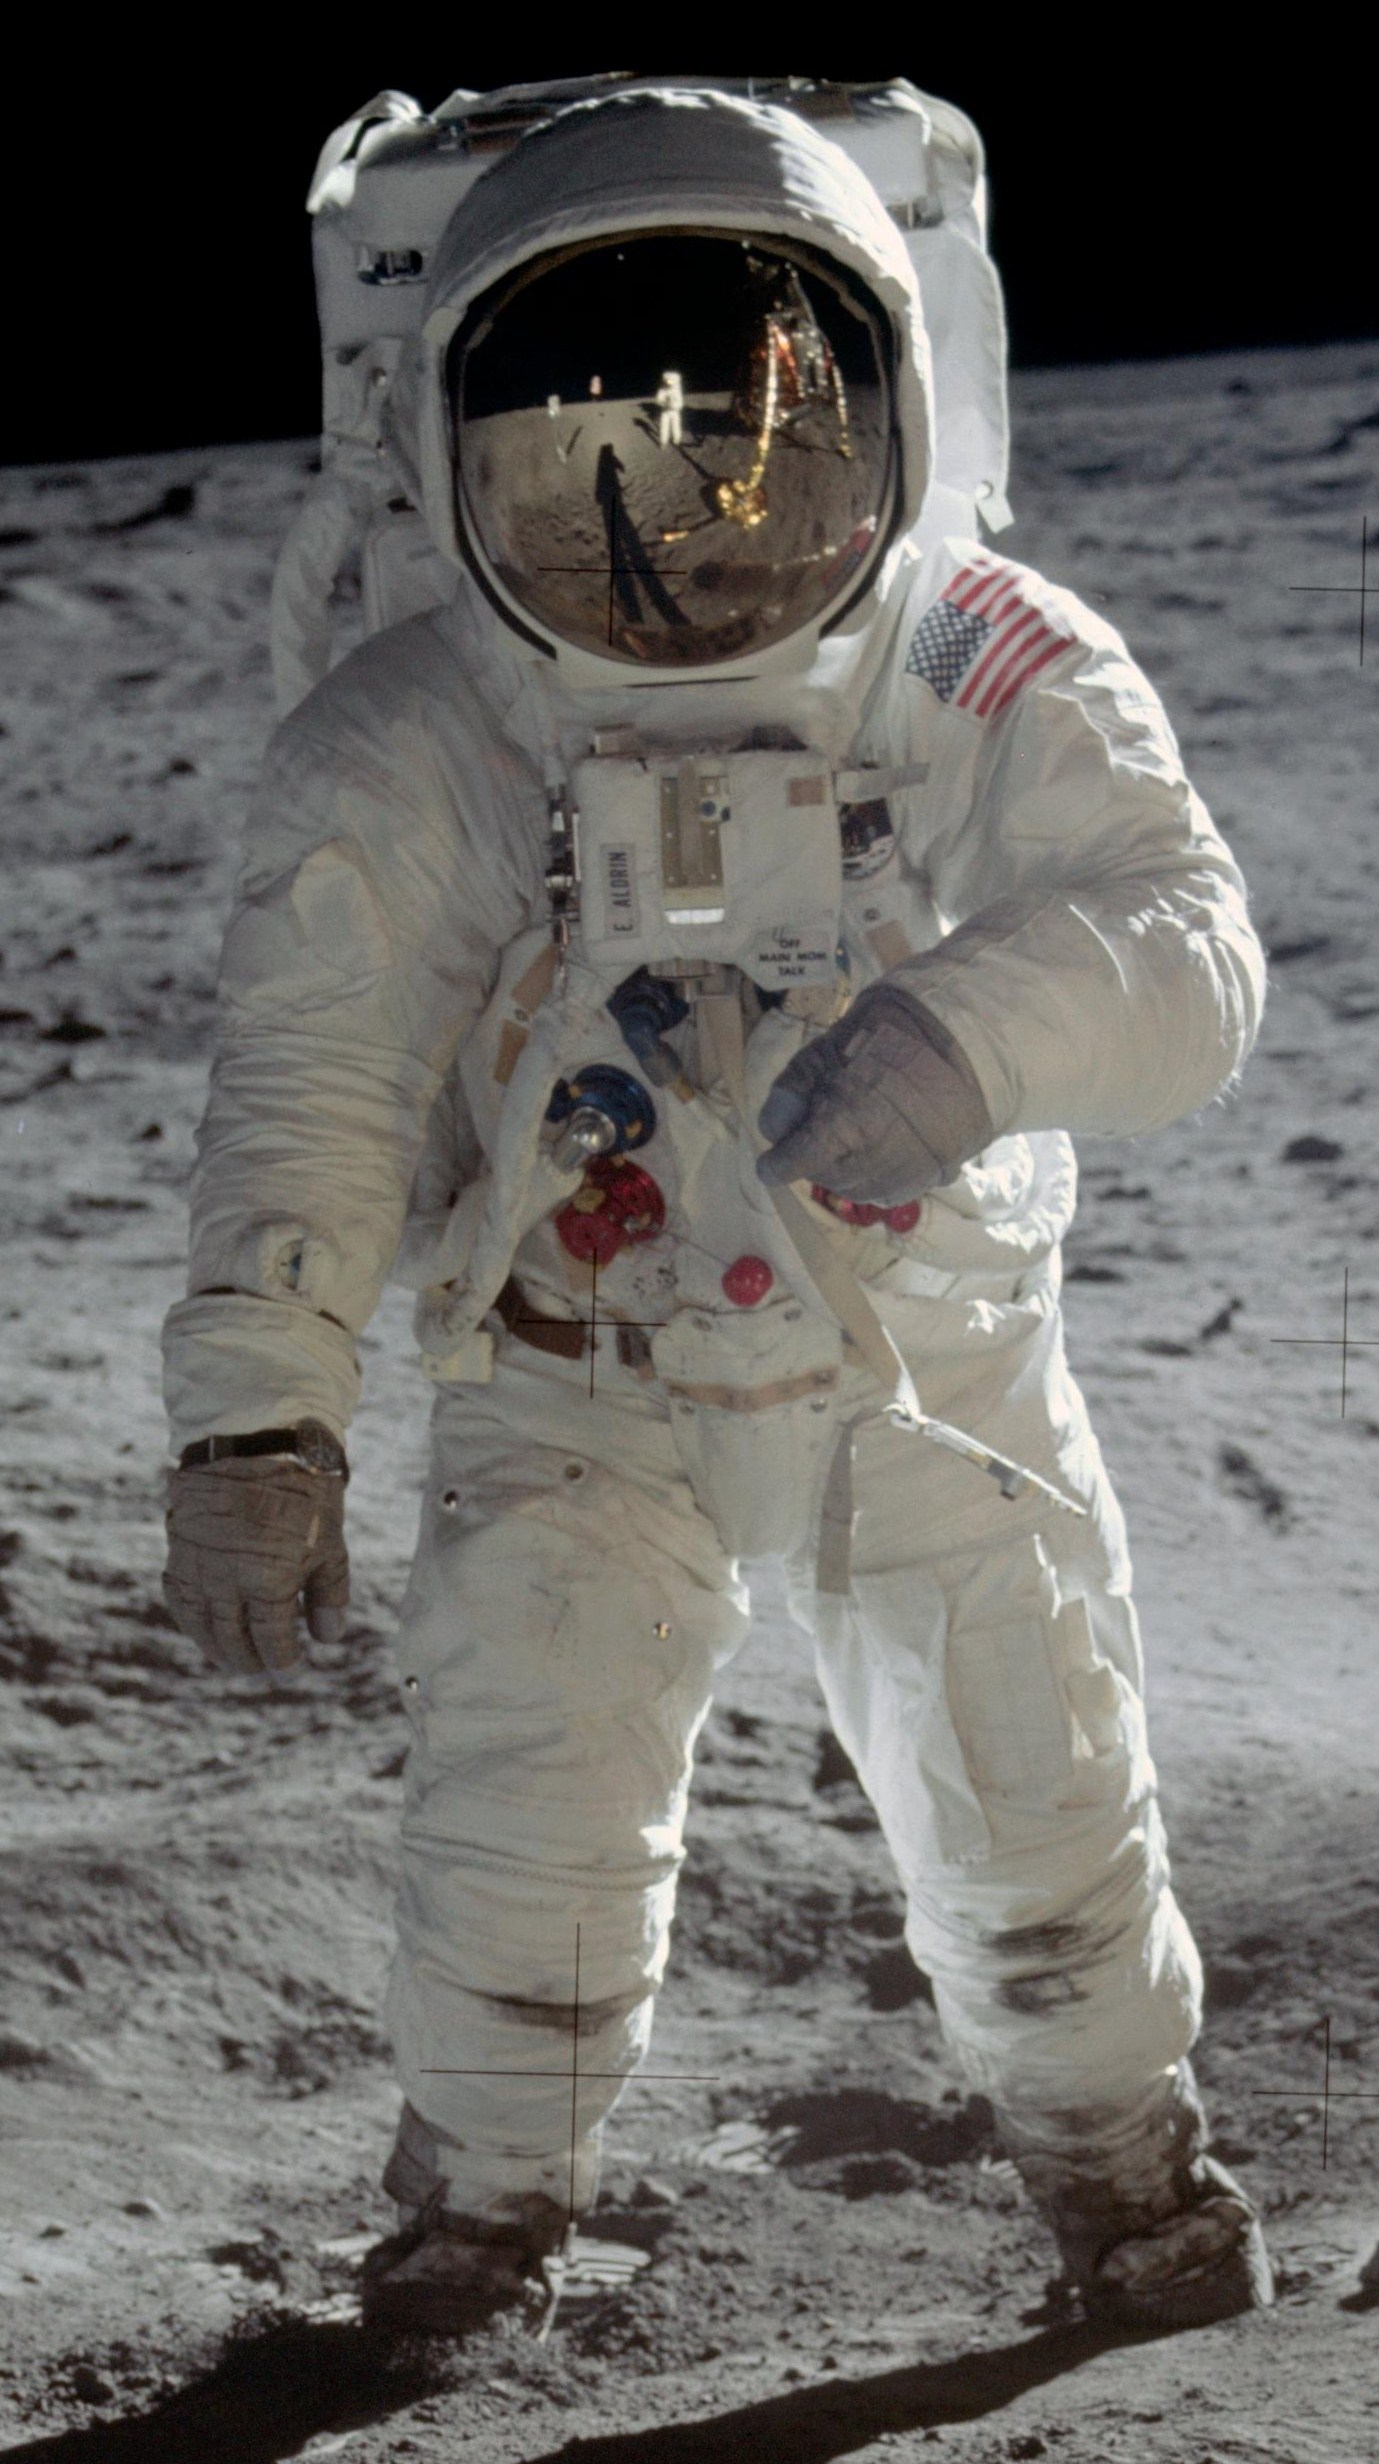 space suit astronaut in space - photo #2